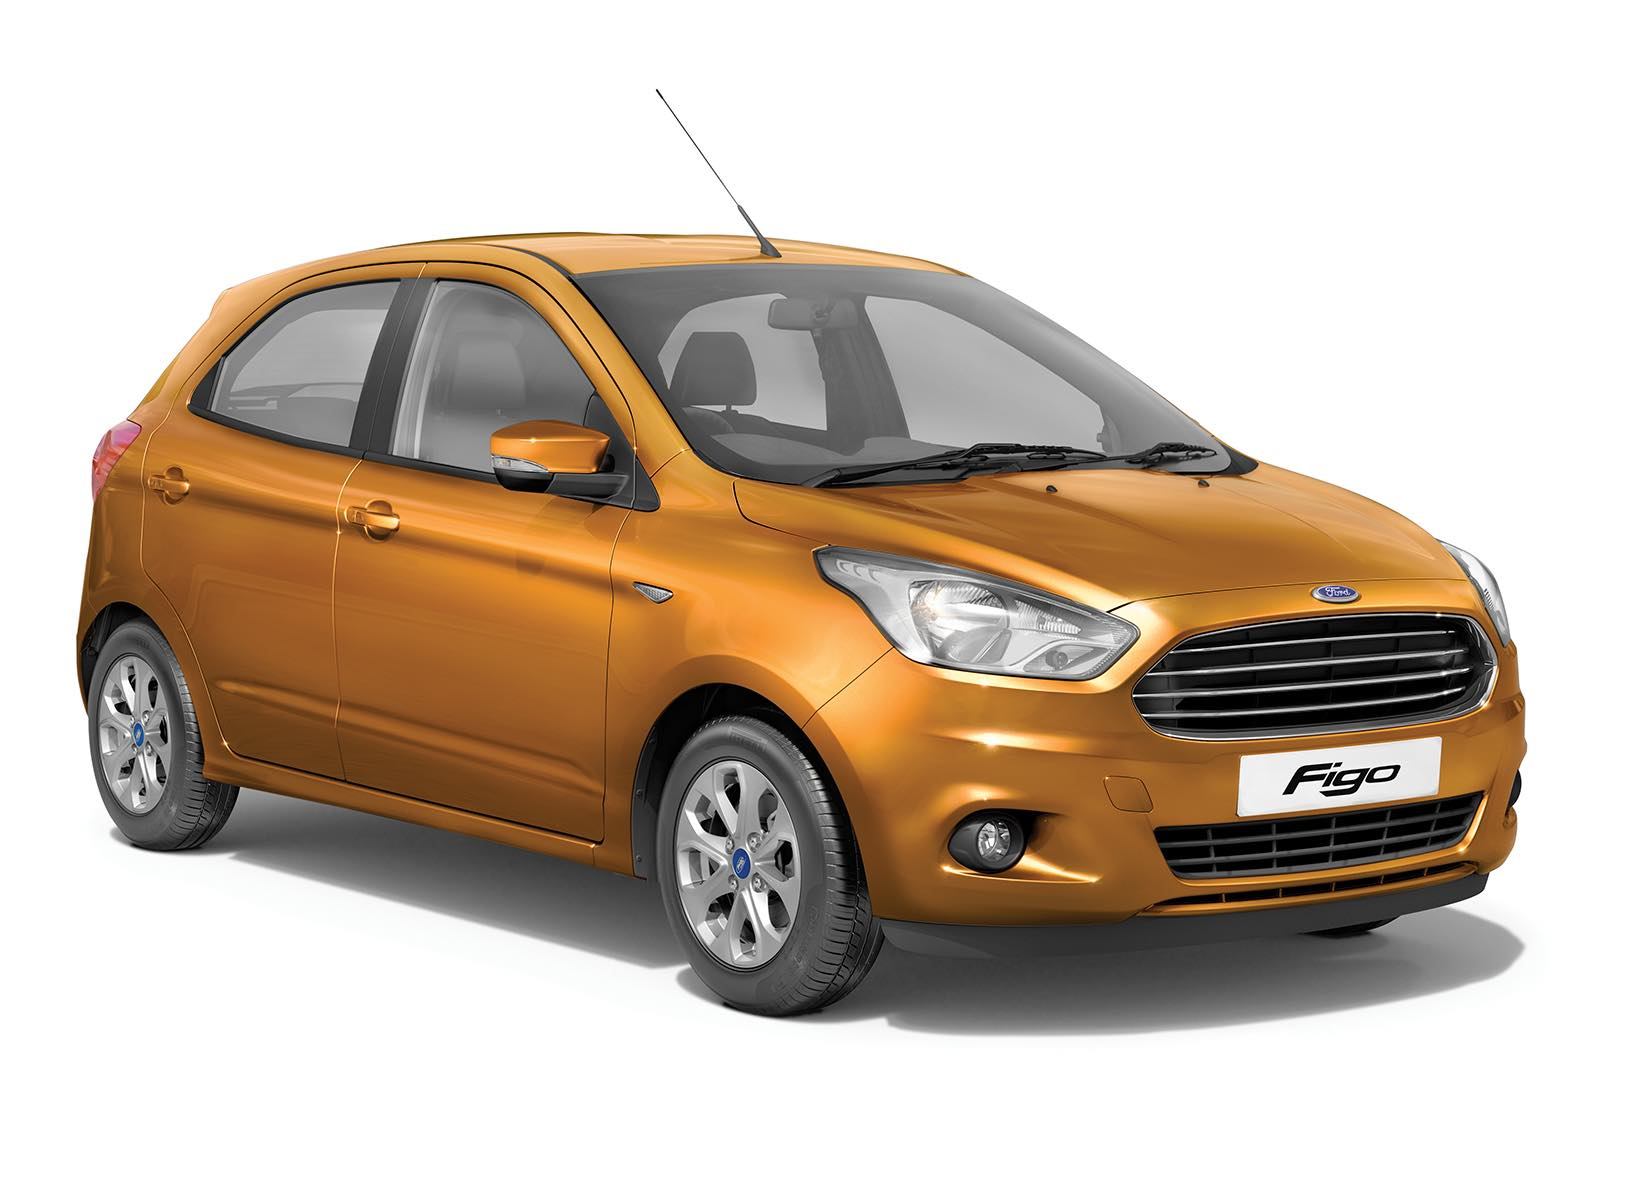 2015 Ford Figo  sc 1 st  MotorBeam & Ford India To Export Cars From Sanand Plant To Europe | MotorBeam ... markmcfarlin.com